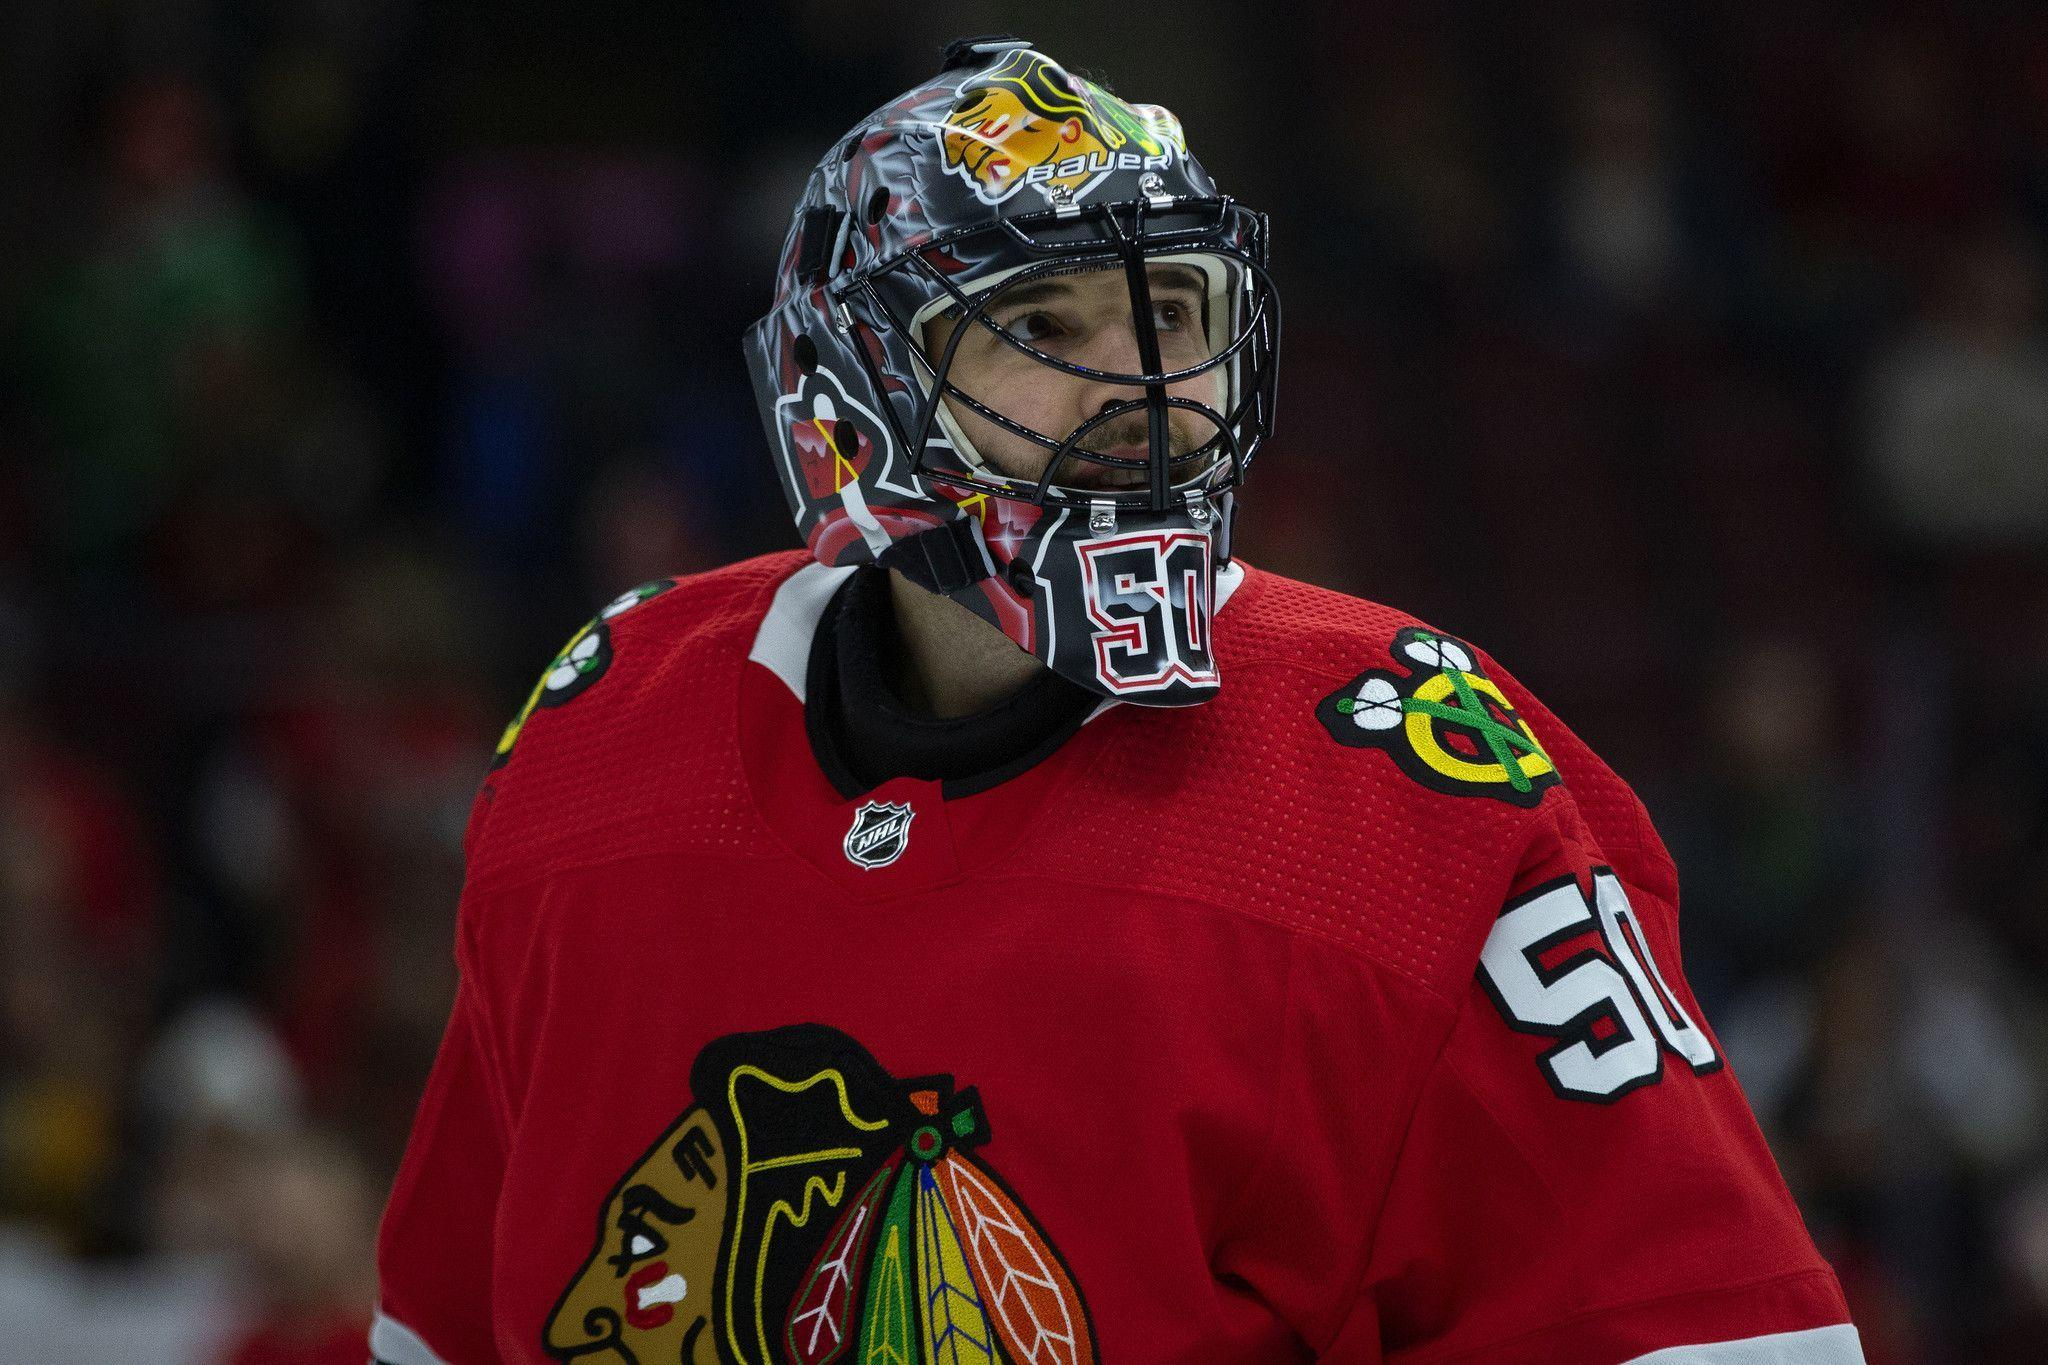 Goalie Corey Crawford is back for Blackhawks after testing positive for COVID-19